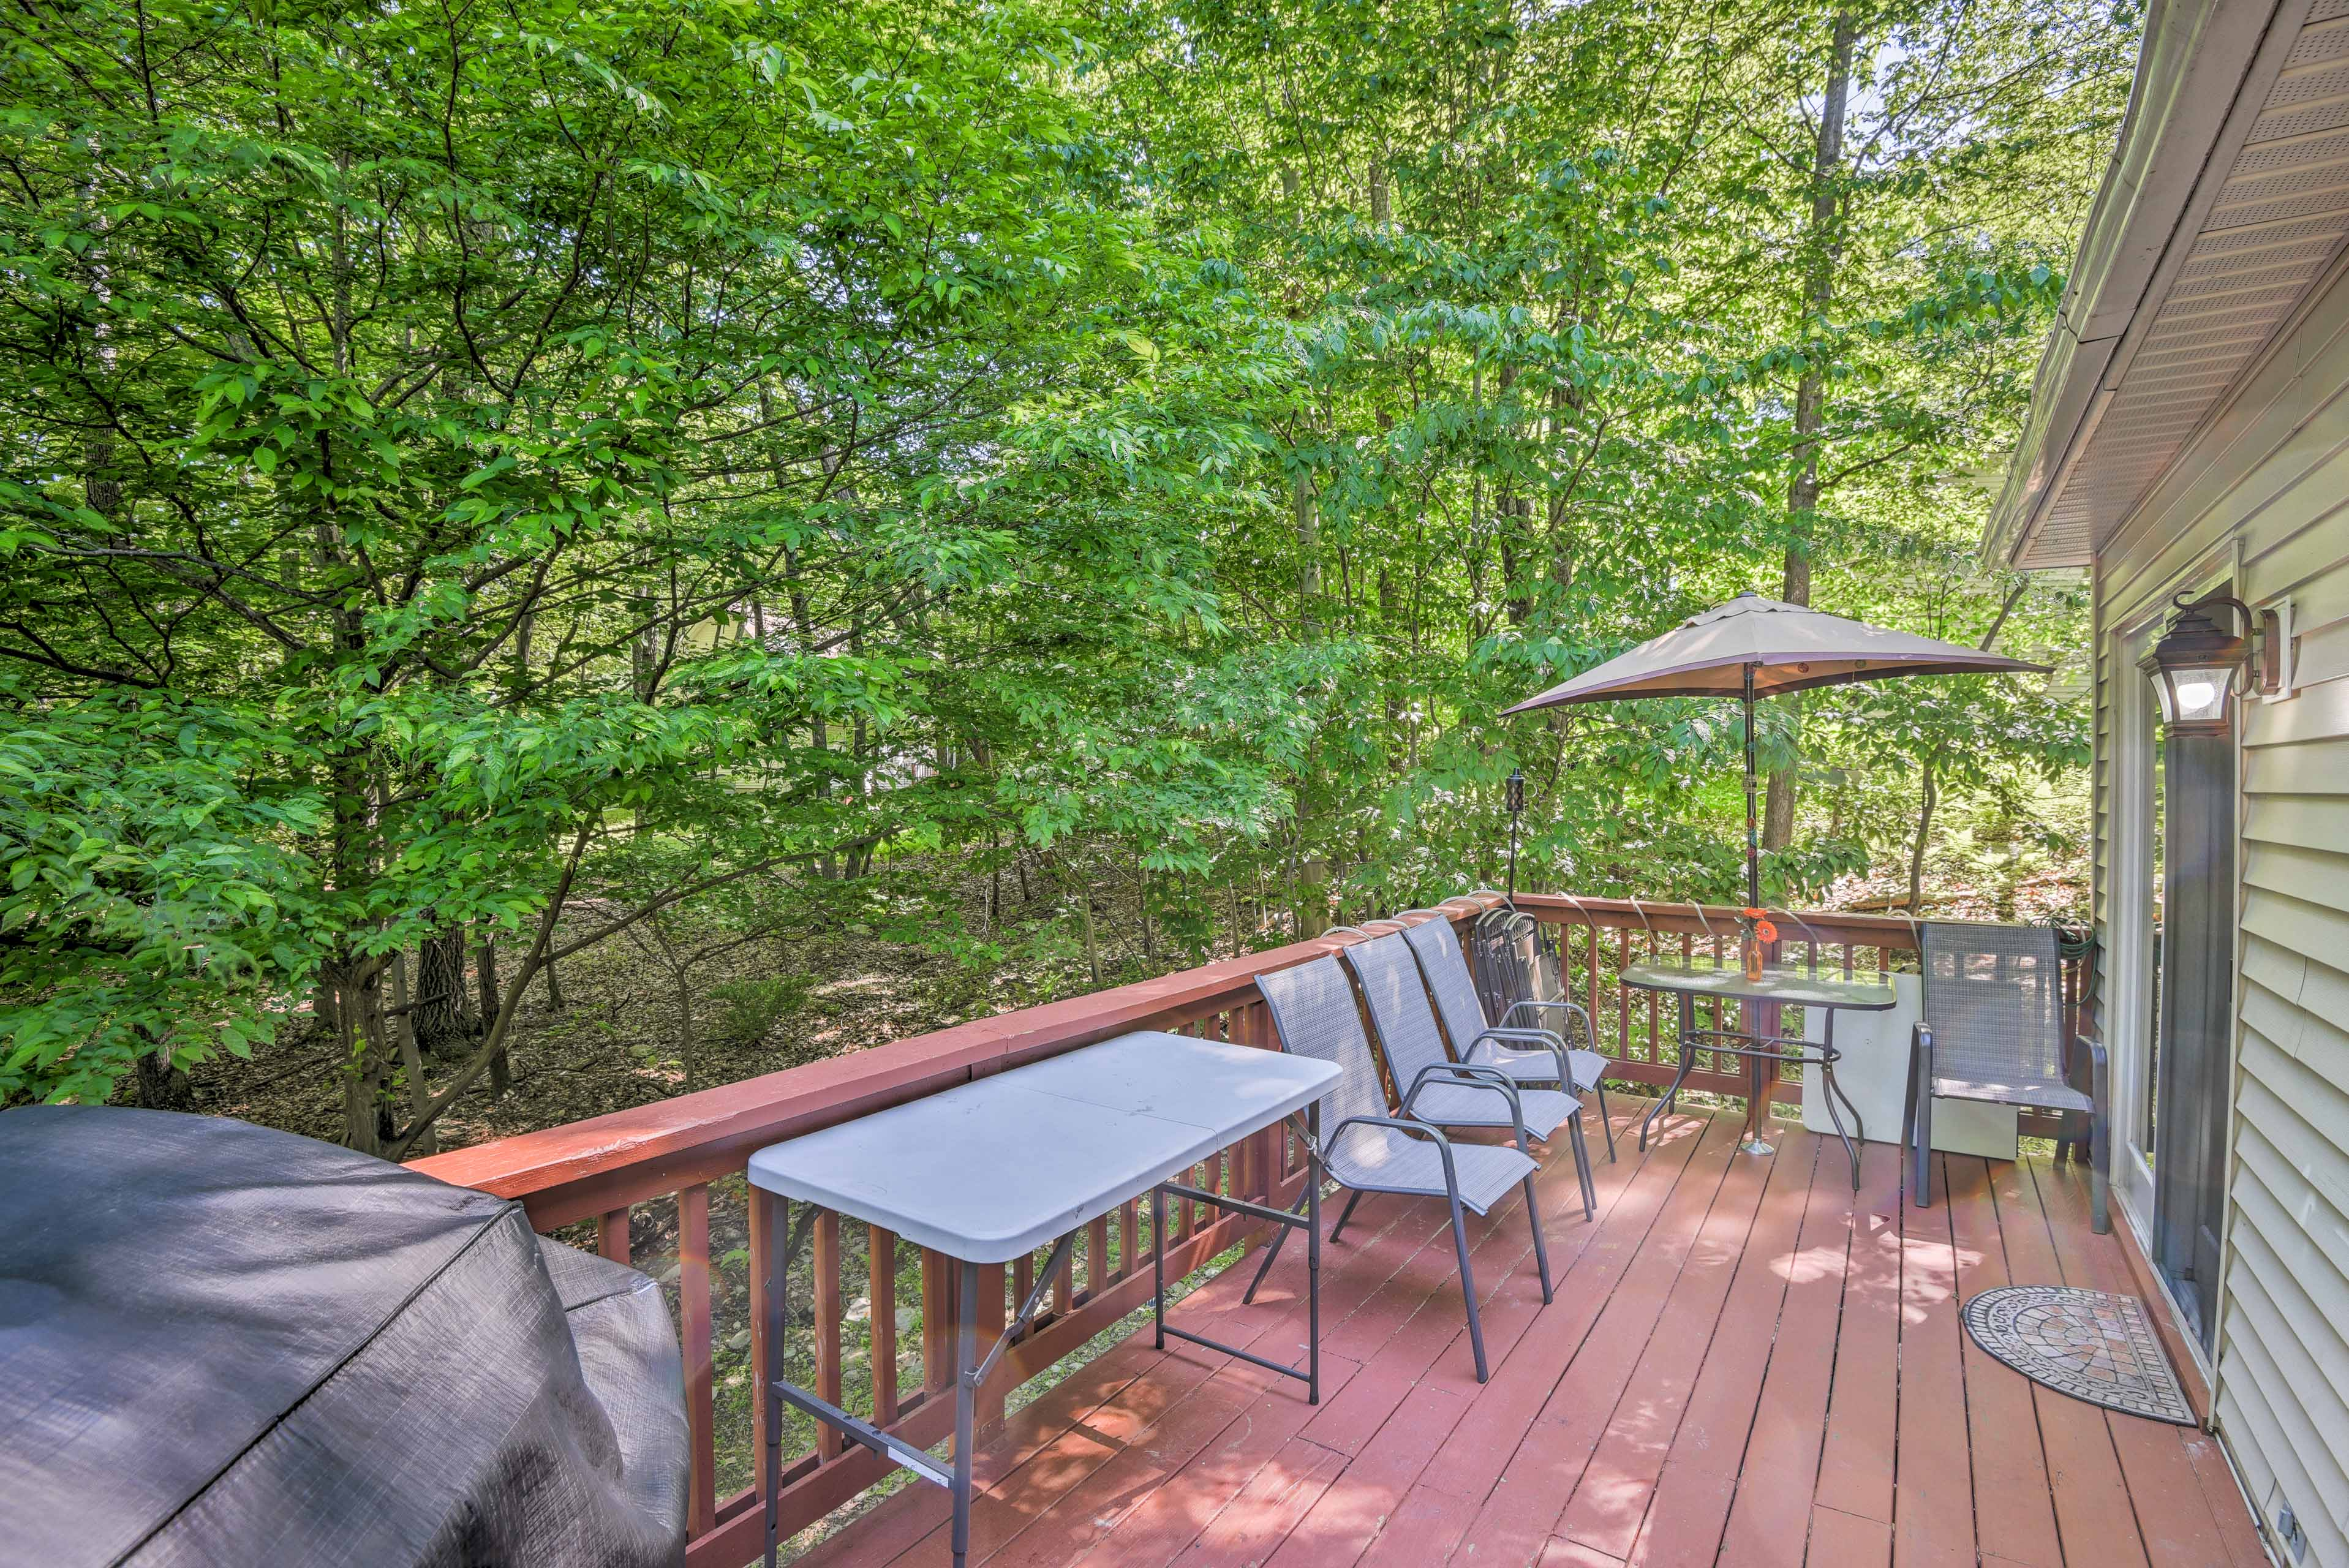 Enjoy barbeques on the deck with use of the gas grill.